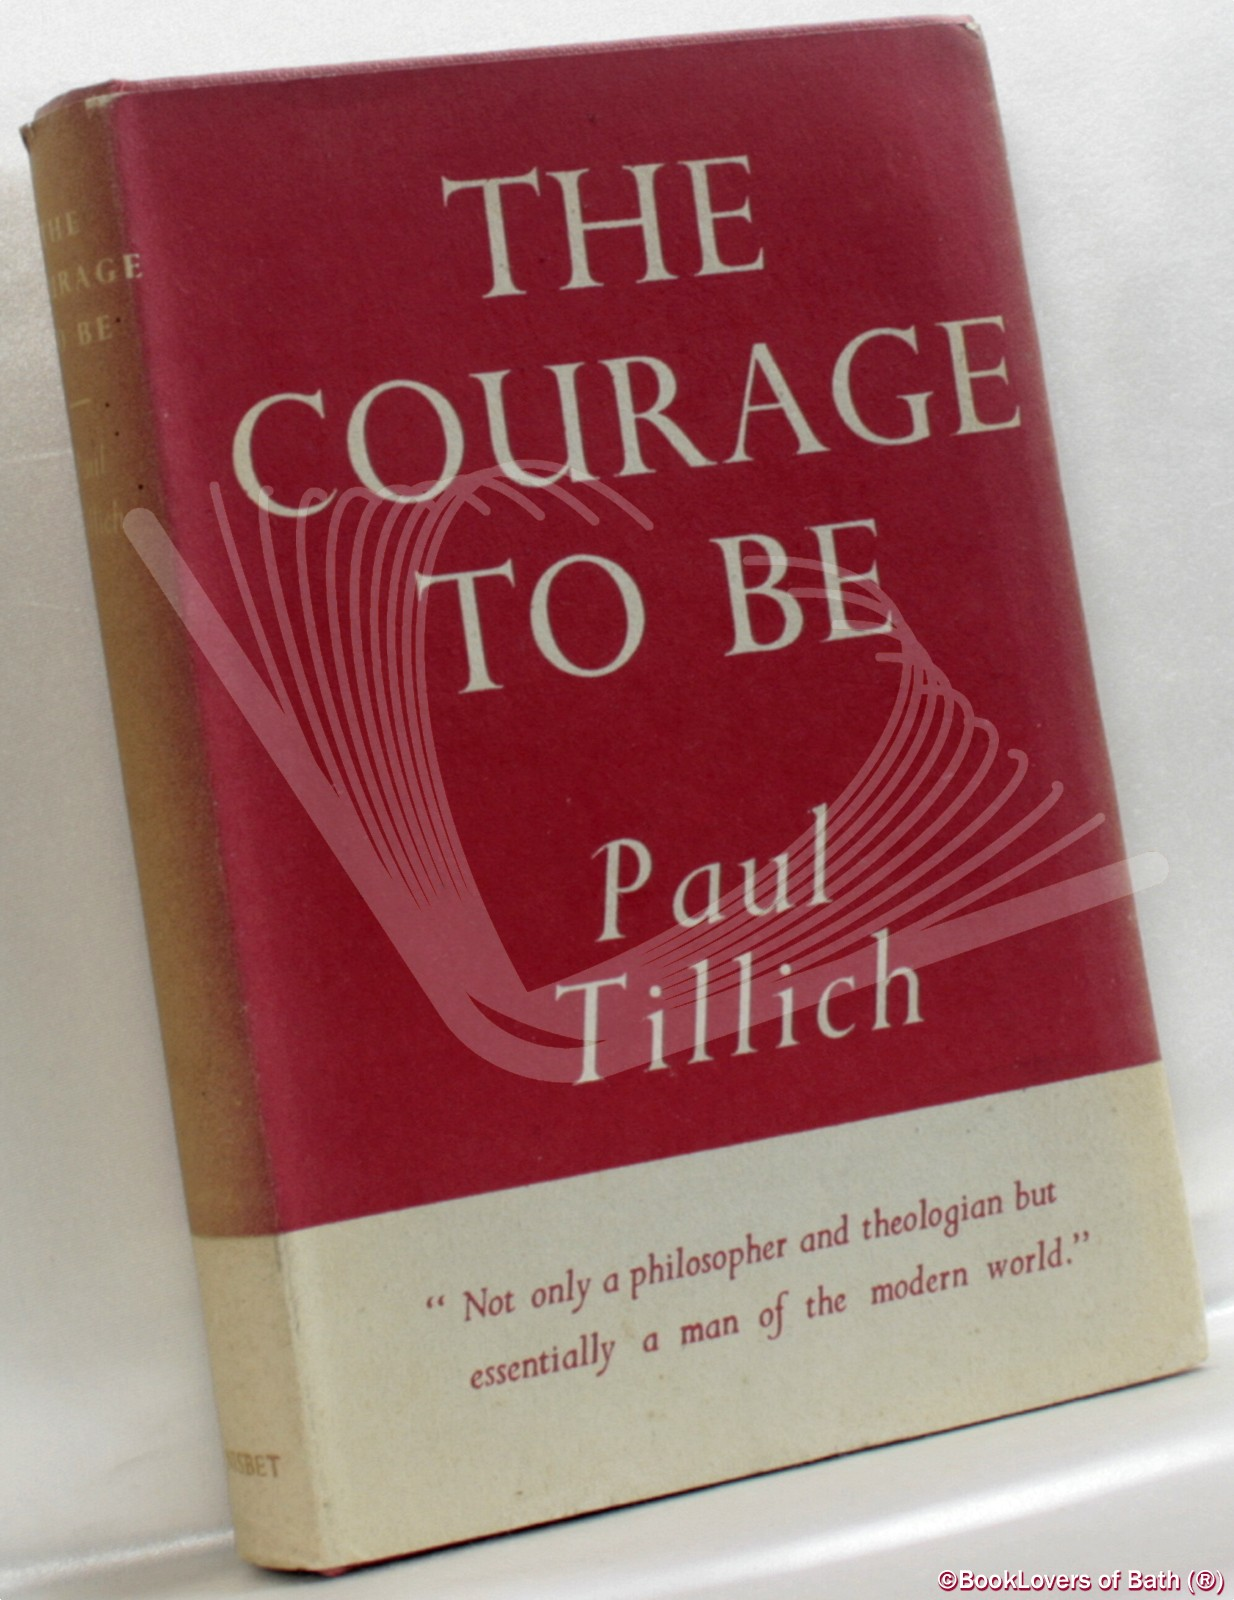 The Courage To Be - Paul Tillich